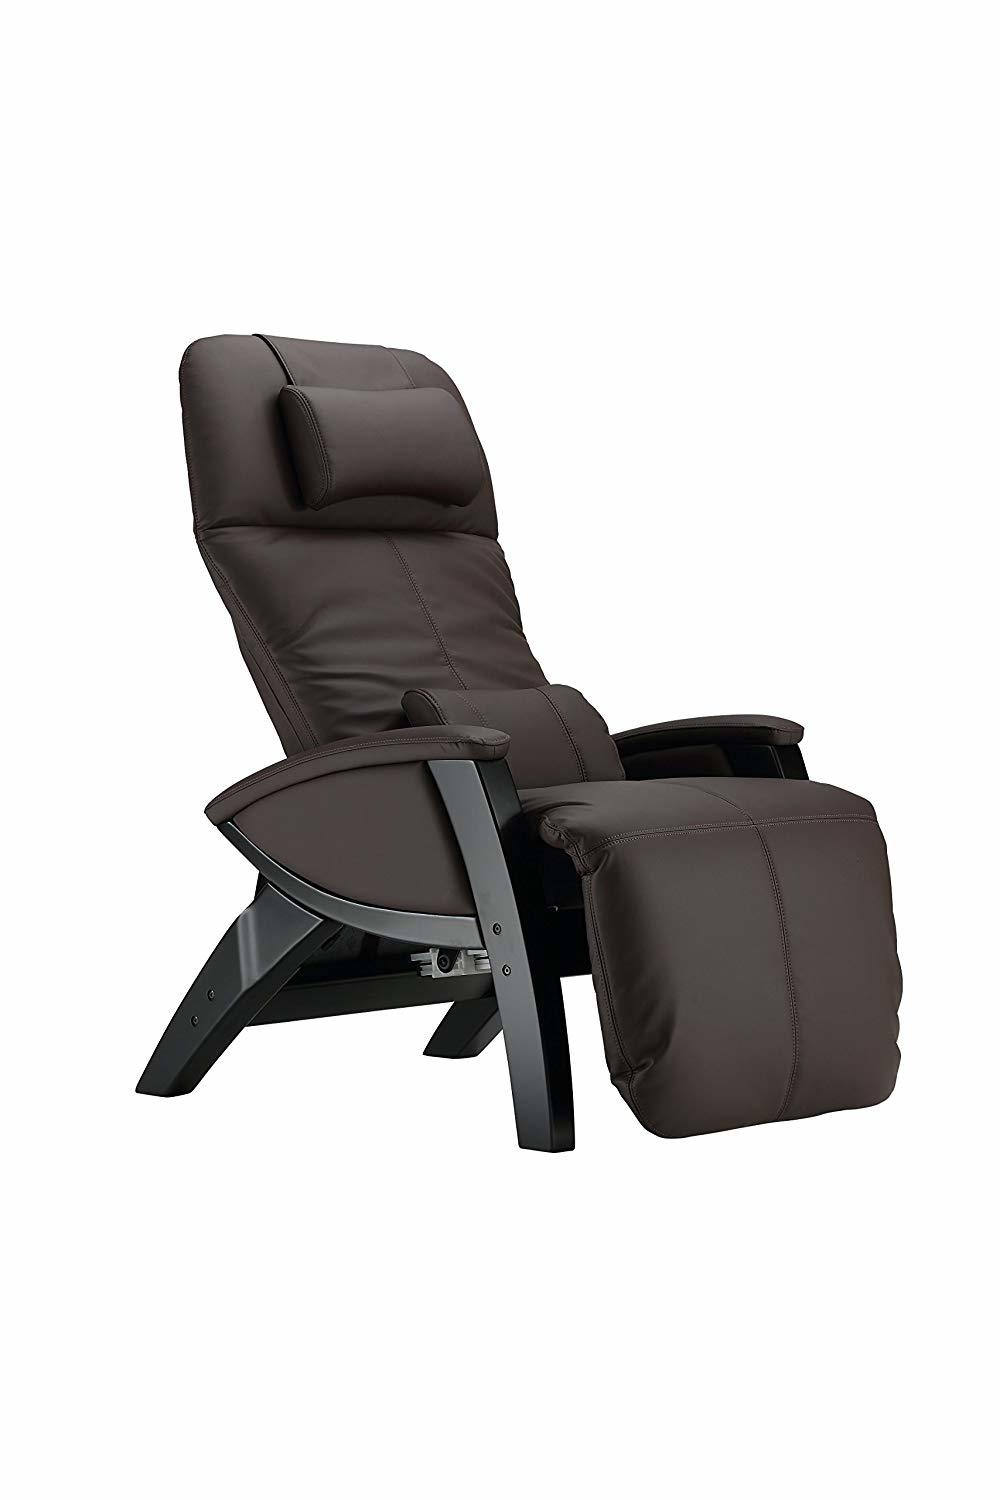 Best Recliners Reviews And Comparisons Cuddly Home